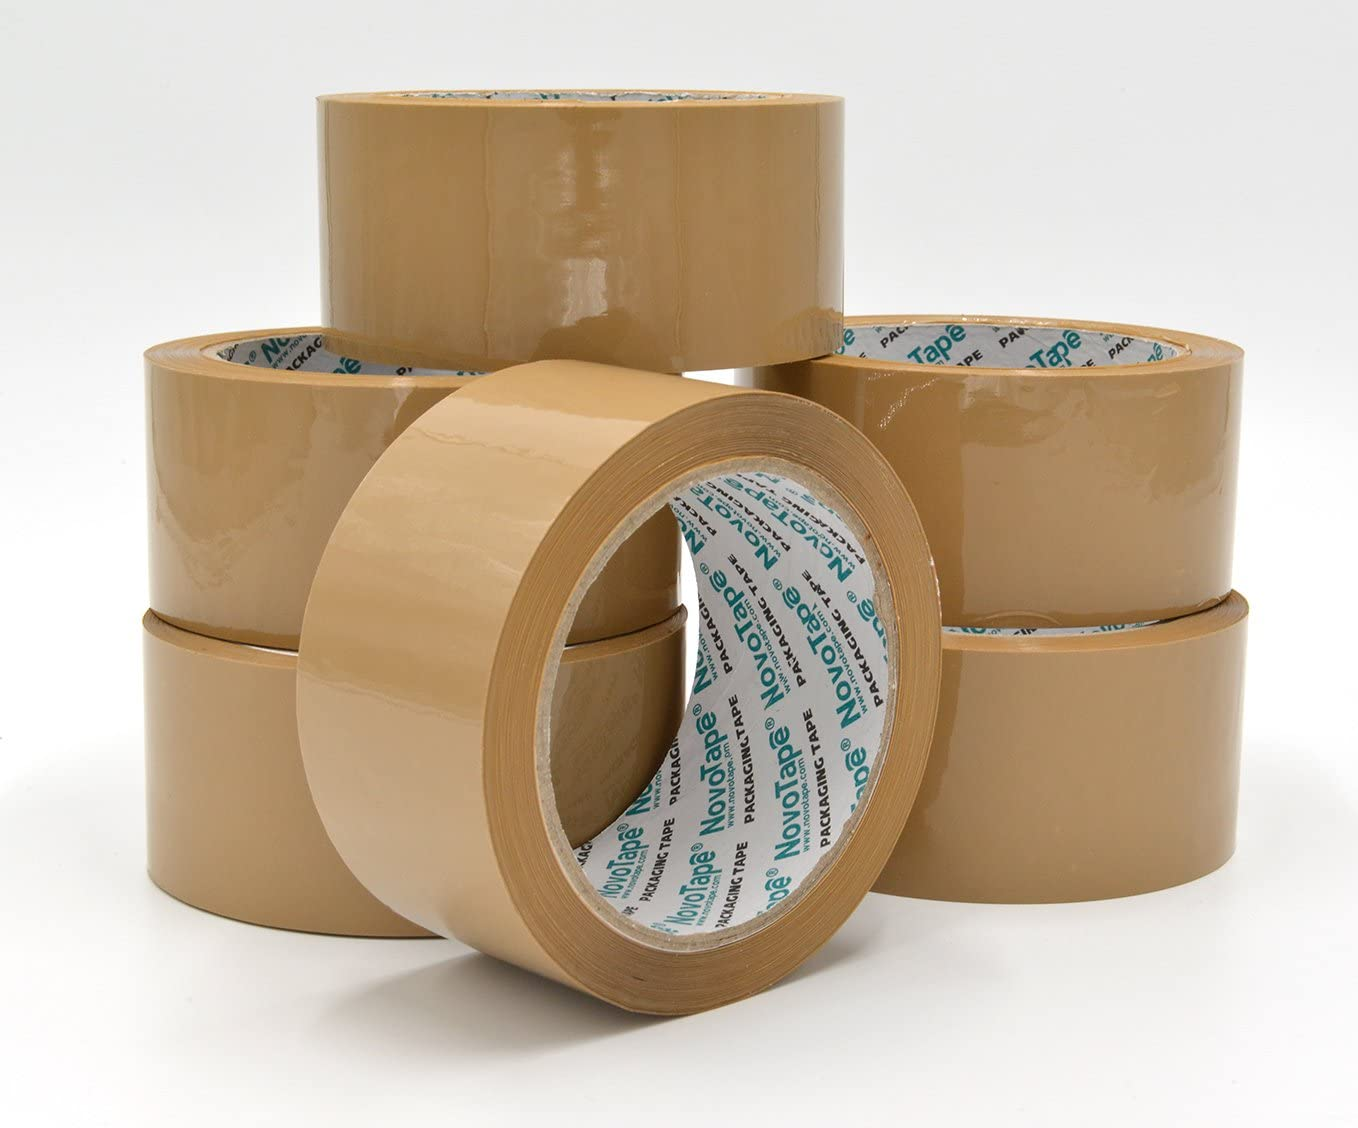 6 Rolls Strong Brown Parcel Packing Packaging Tape Carton Sealing Tapes